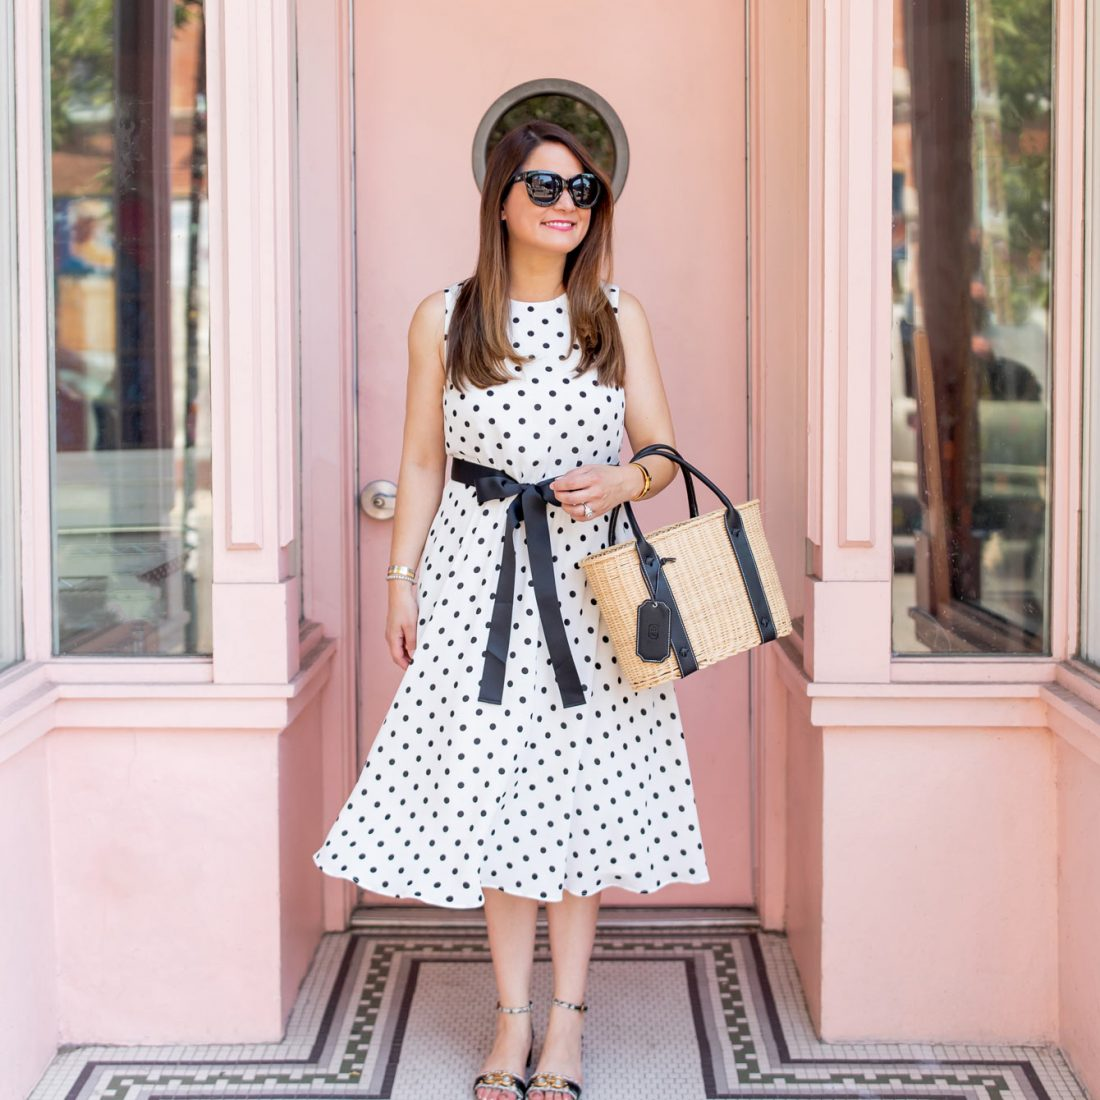 Jenn Lake Polka Dot Dress